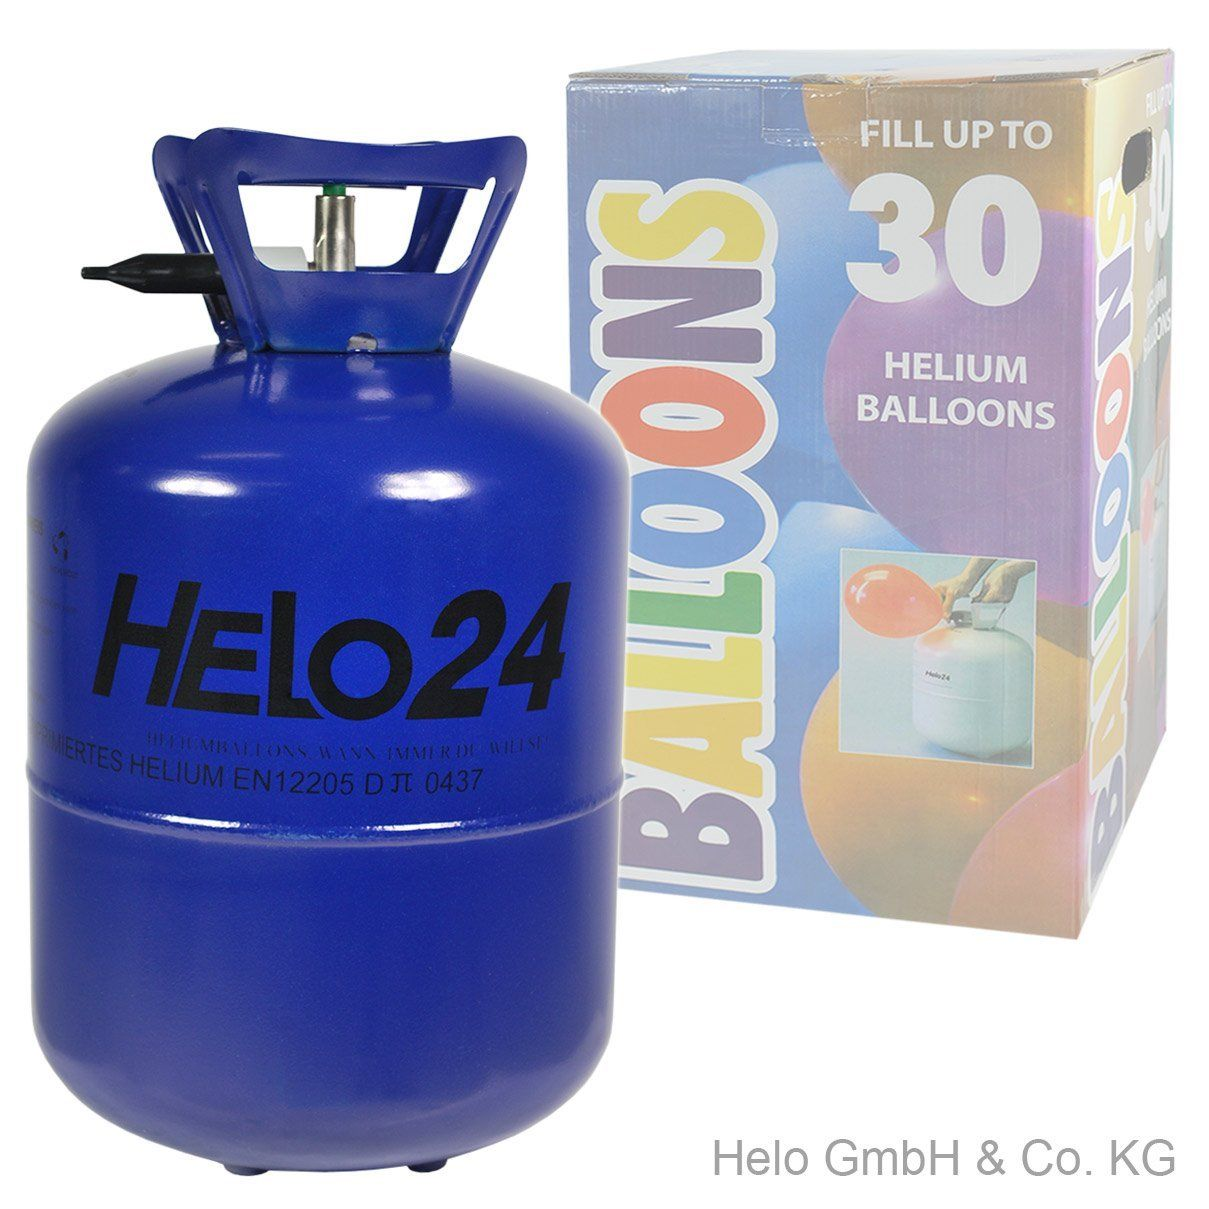 helium ballongas heliumflasche ballon gas party f r 30. Black Bedroom Furniture Sets. Home Design Ideas